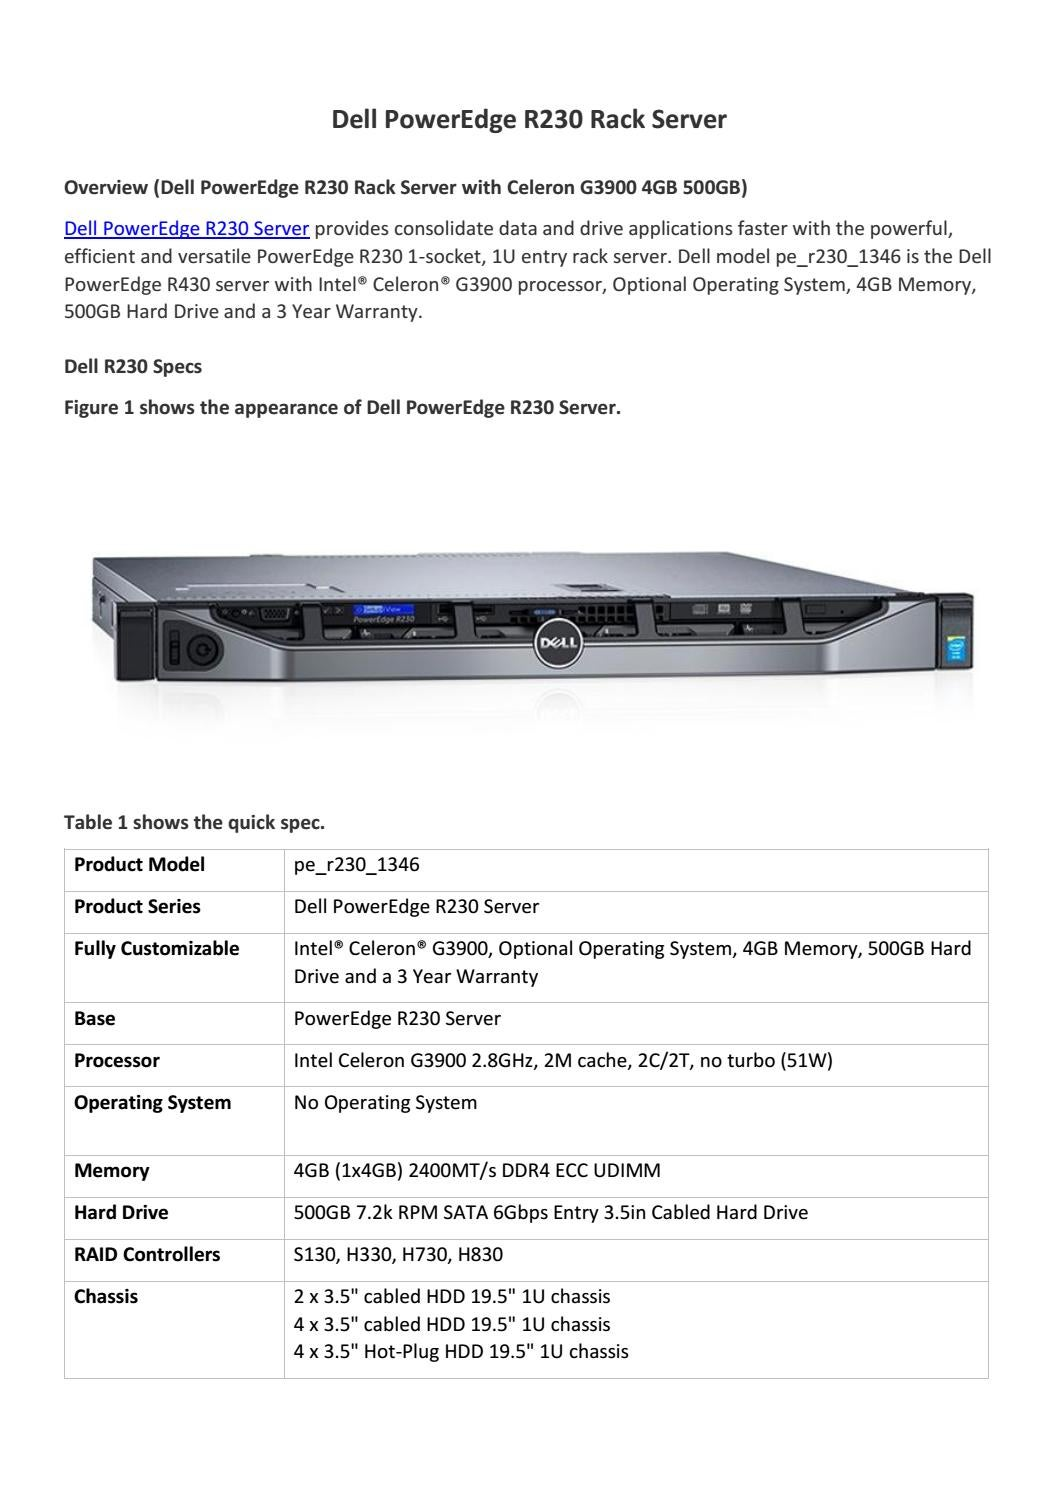 Dell poweredge r230 rack server overview by Router Switch - issuu